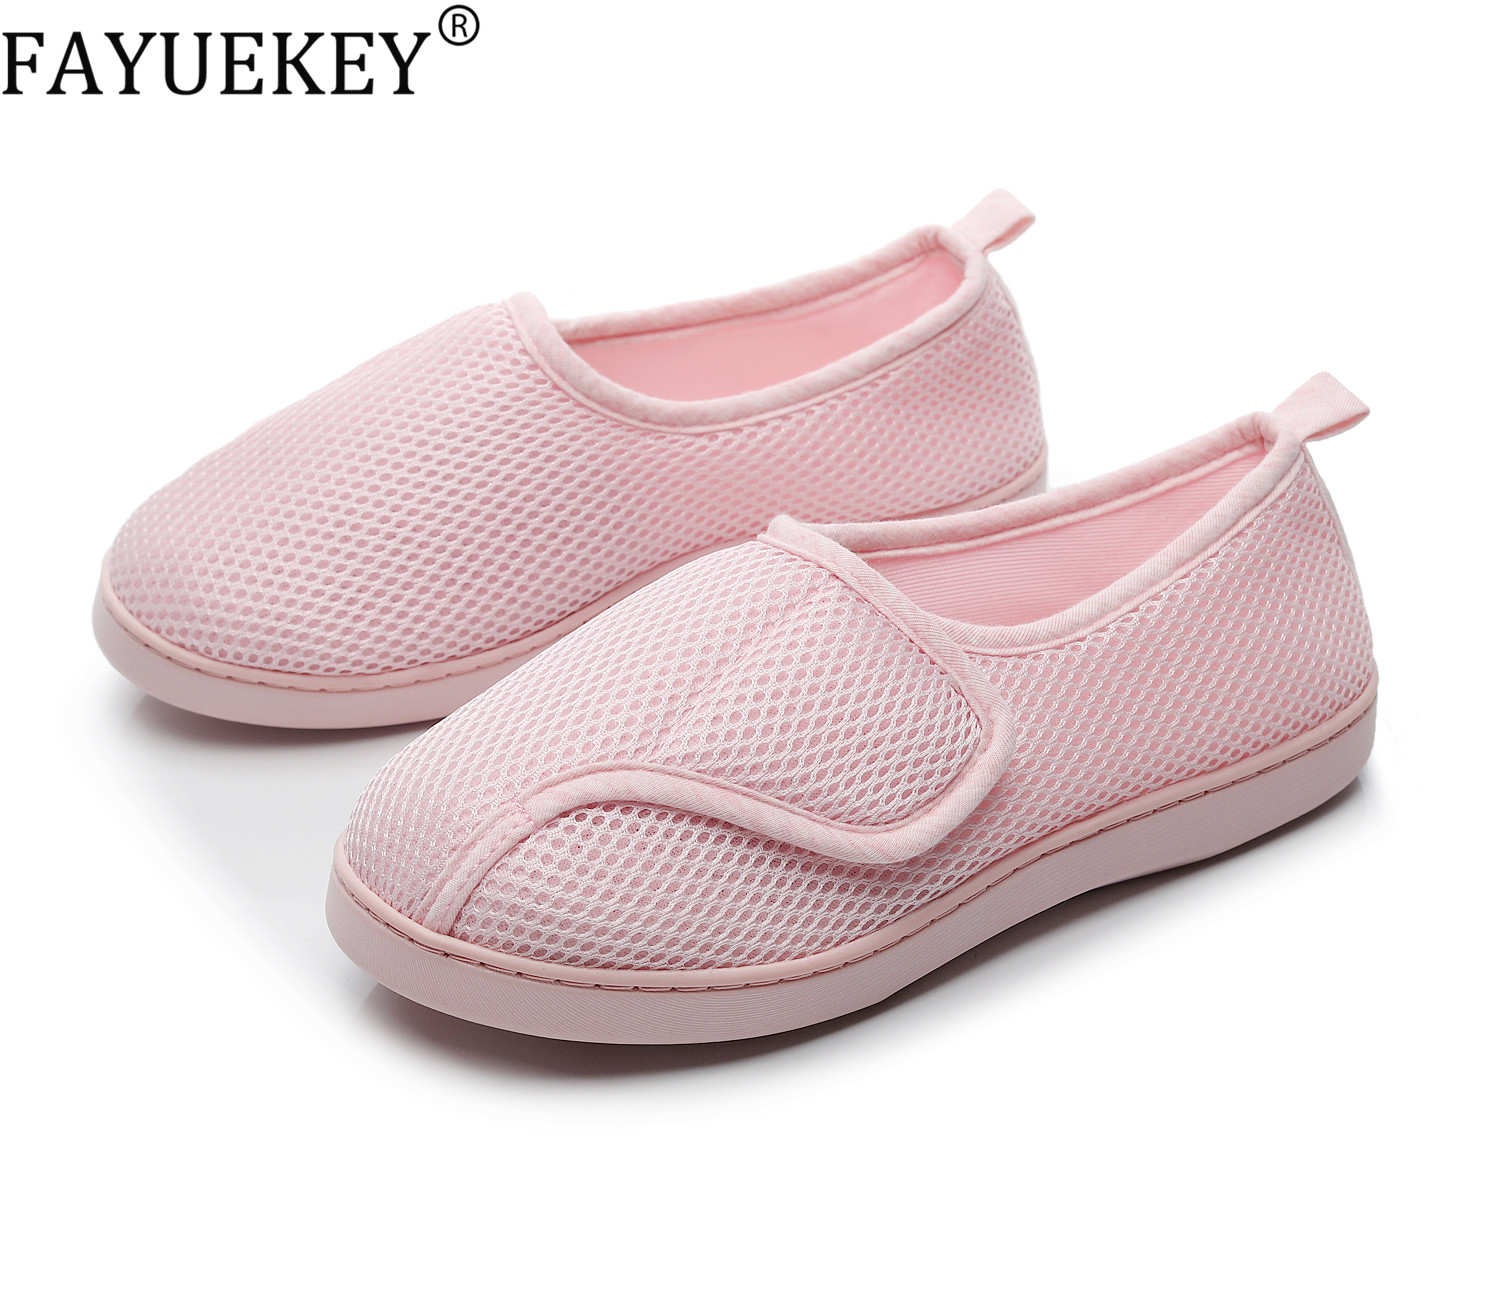 Women Shoes Home Soft Mesh Breathable Pregnant Slippers anti-slip Diabetic Arthritis Edema Slippers for Expectant Mom Extra Wide 1